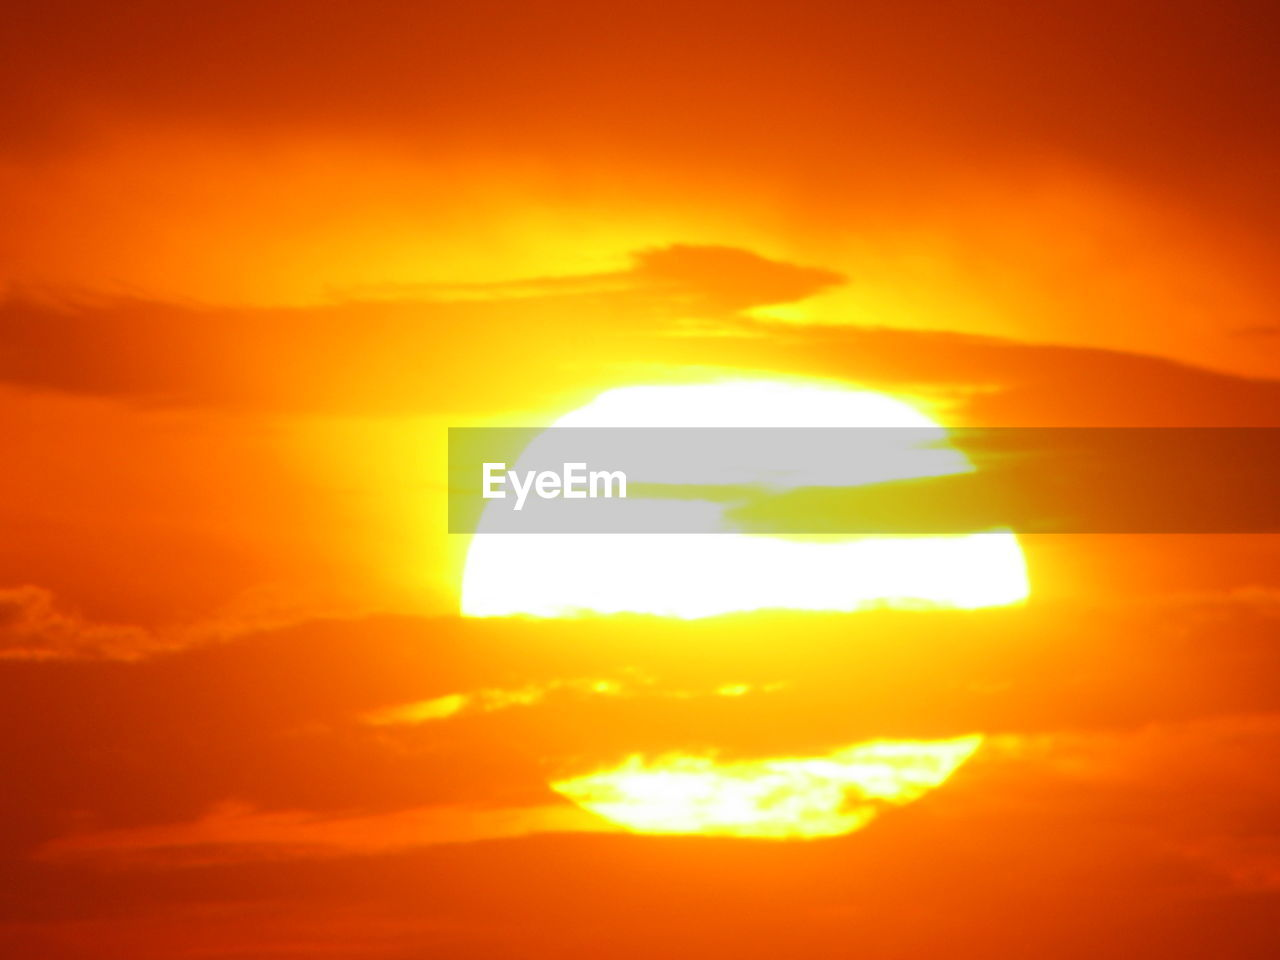 sun, sunset, orange color, beauty in nature, nature, scenics, sky, majestic, yellow, space, solar eclipse, sunlight, outdoors, silhouette, tranquil scene, cloud - sky, tranquility, natural phenomenon, no people, astronomy, day